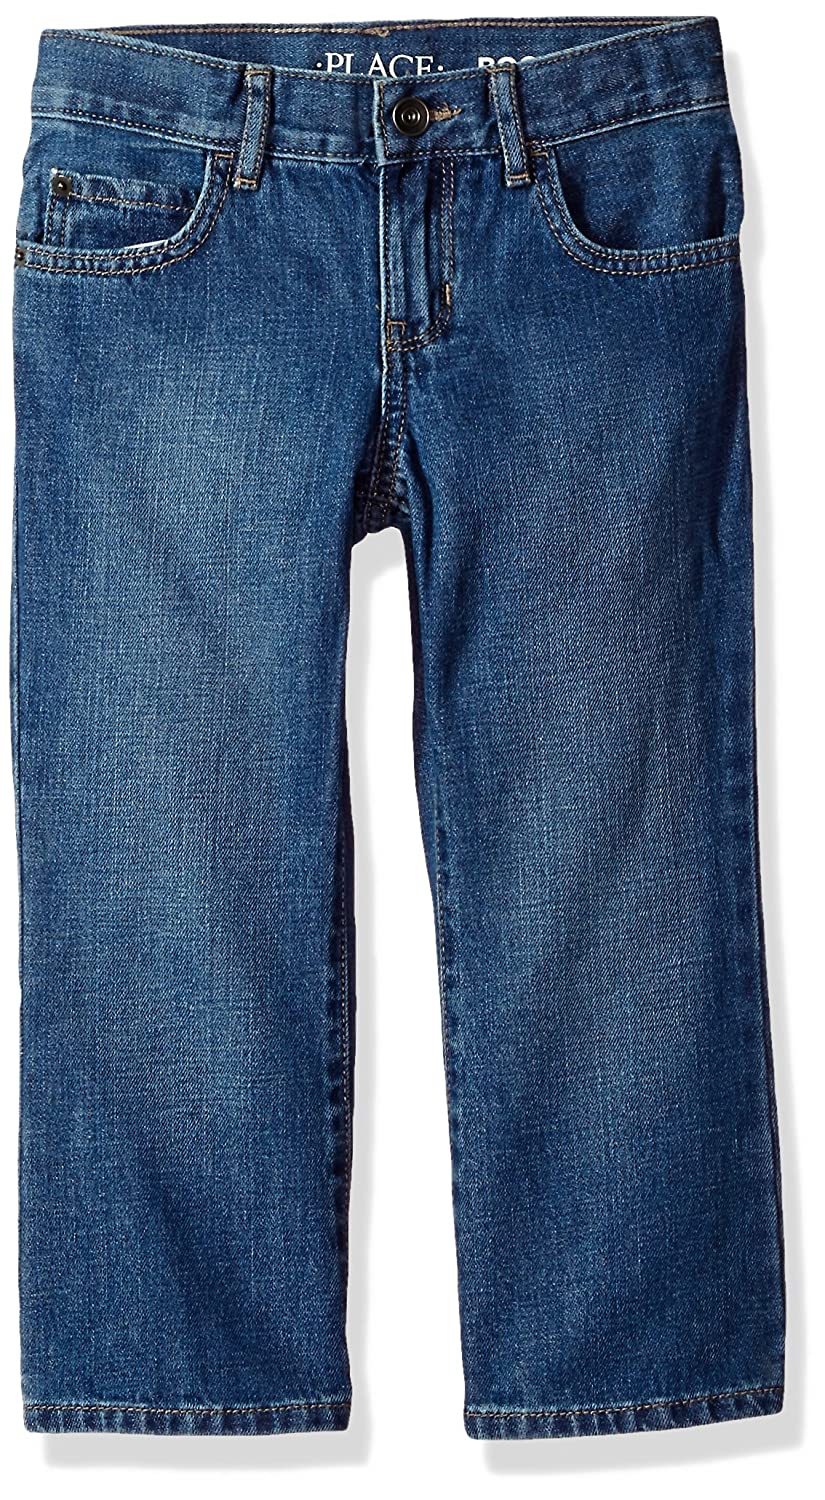 The Childrens Place Boys Bootcut Jeans